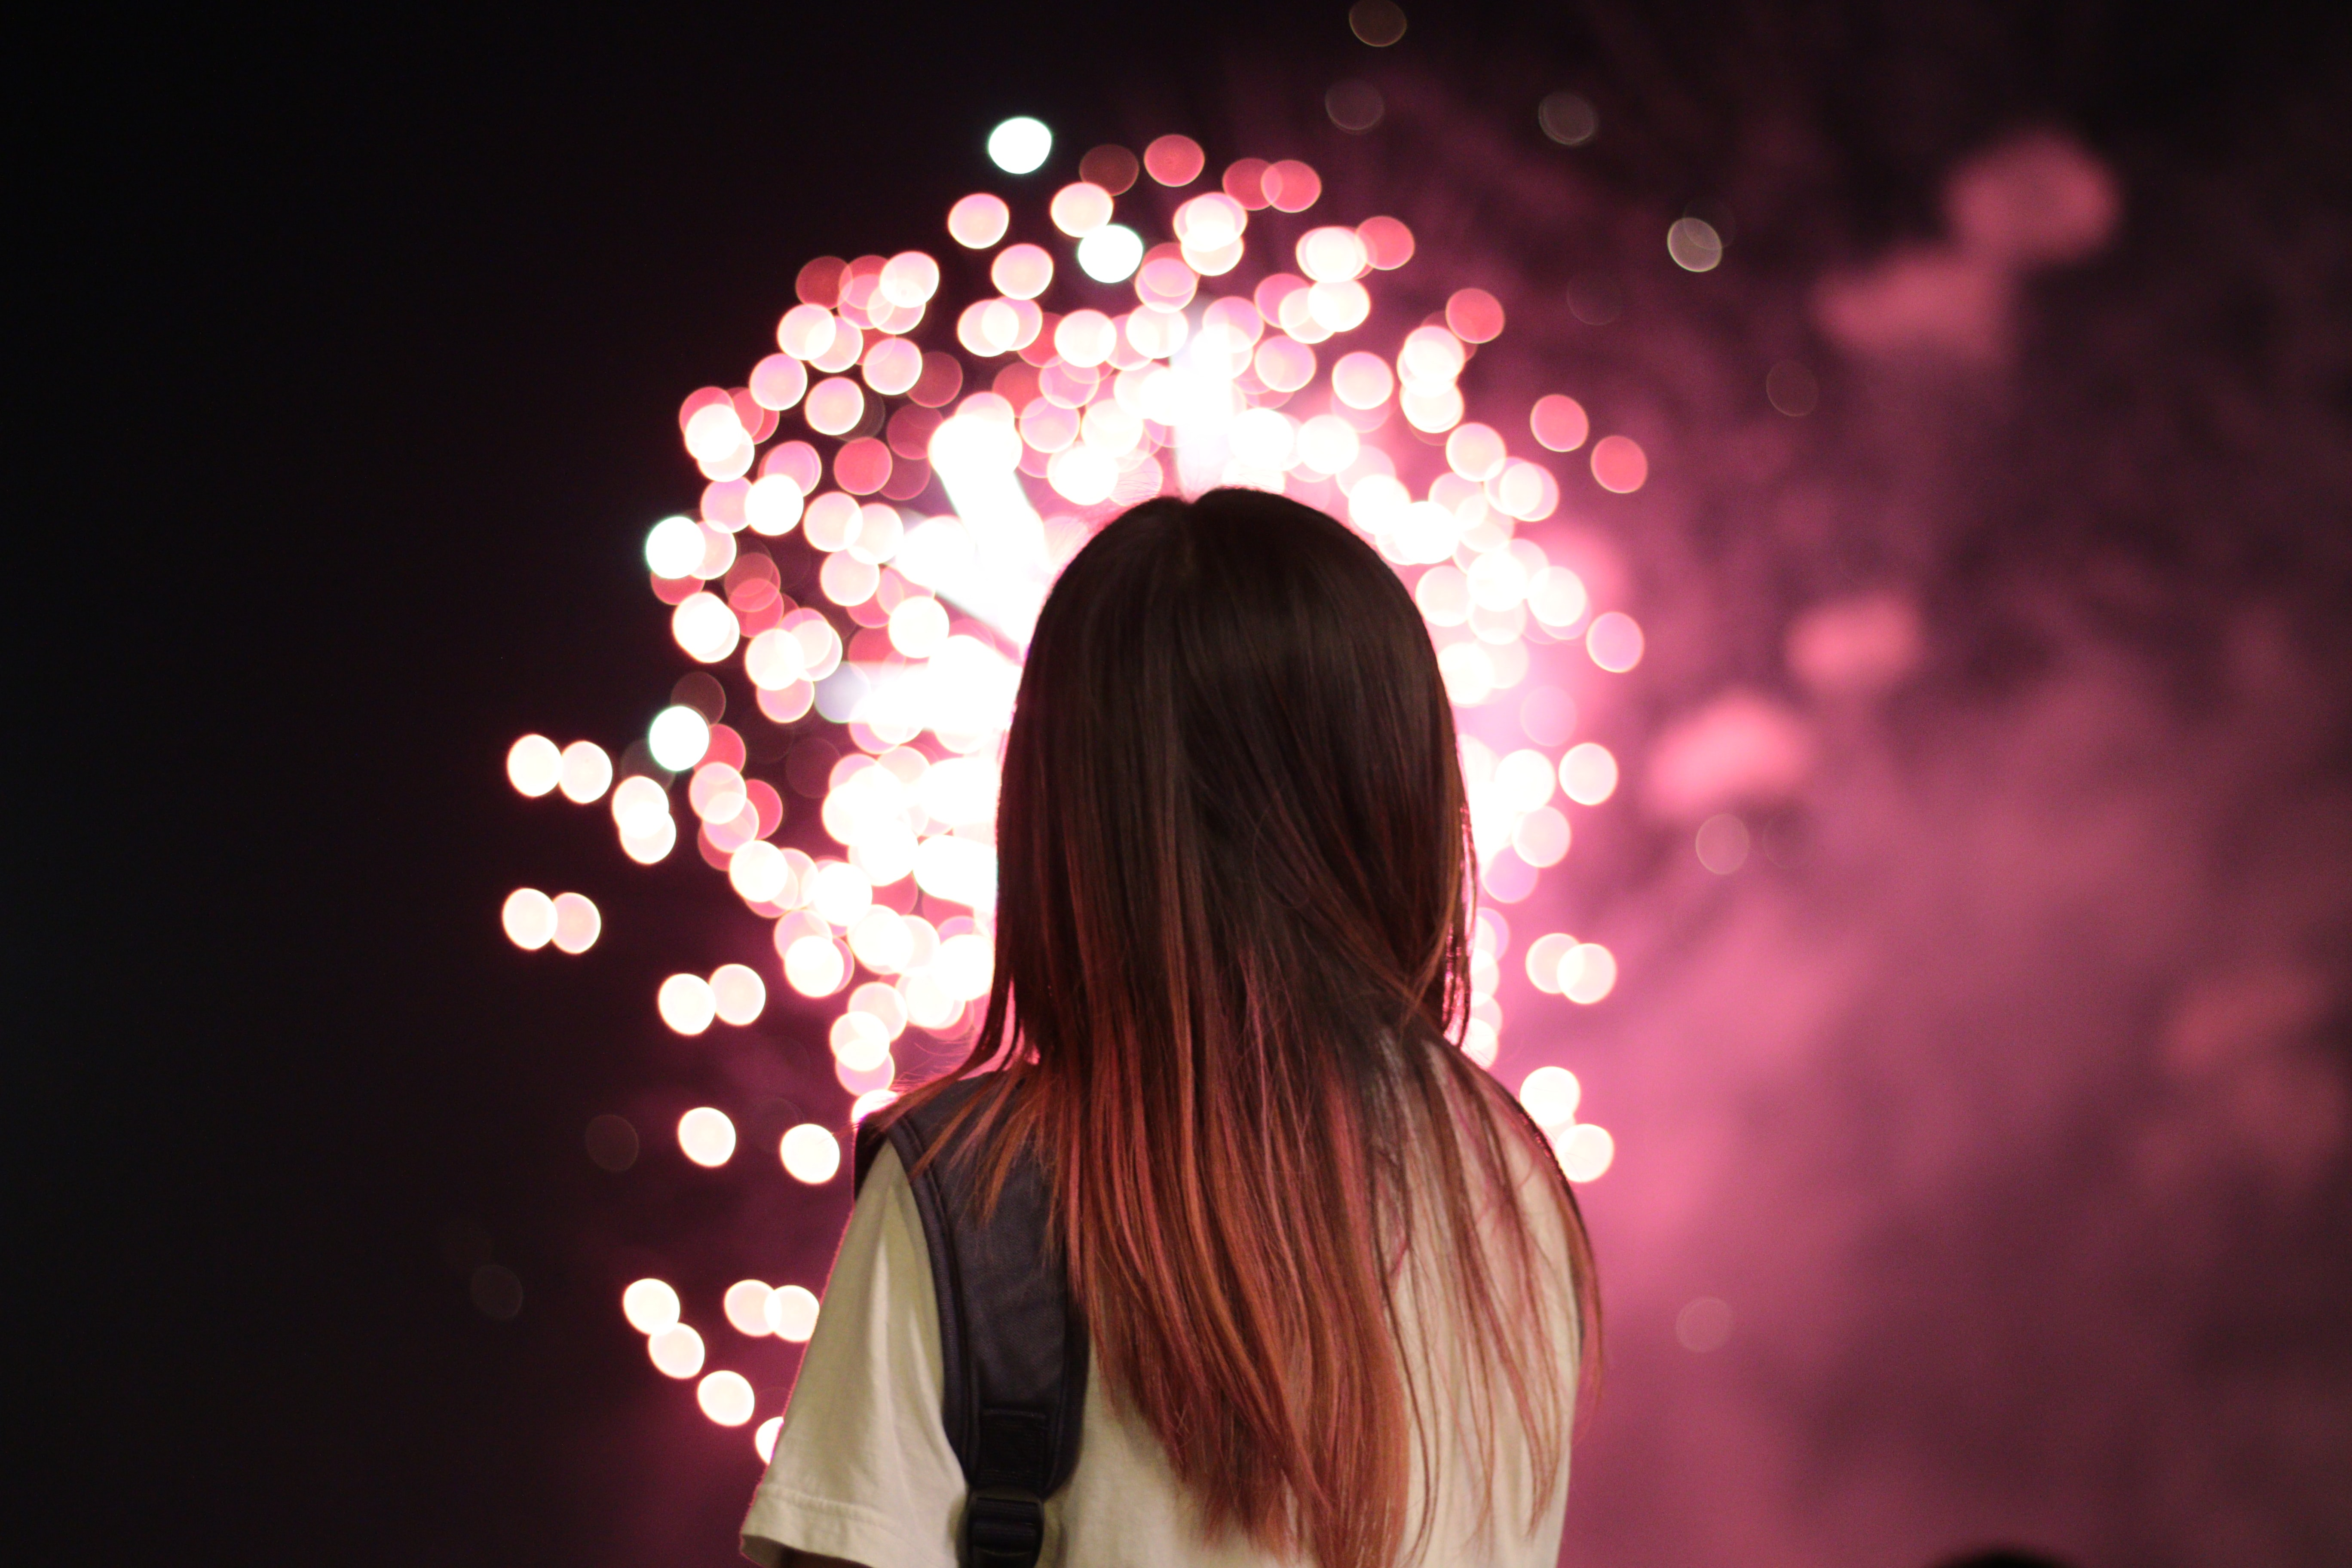 woman staring at fireworks